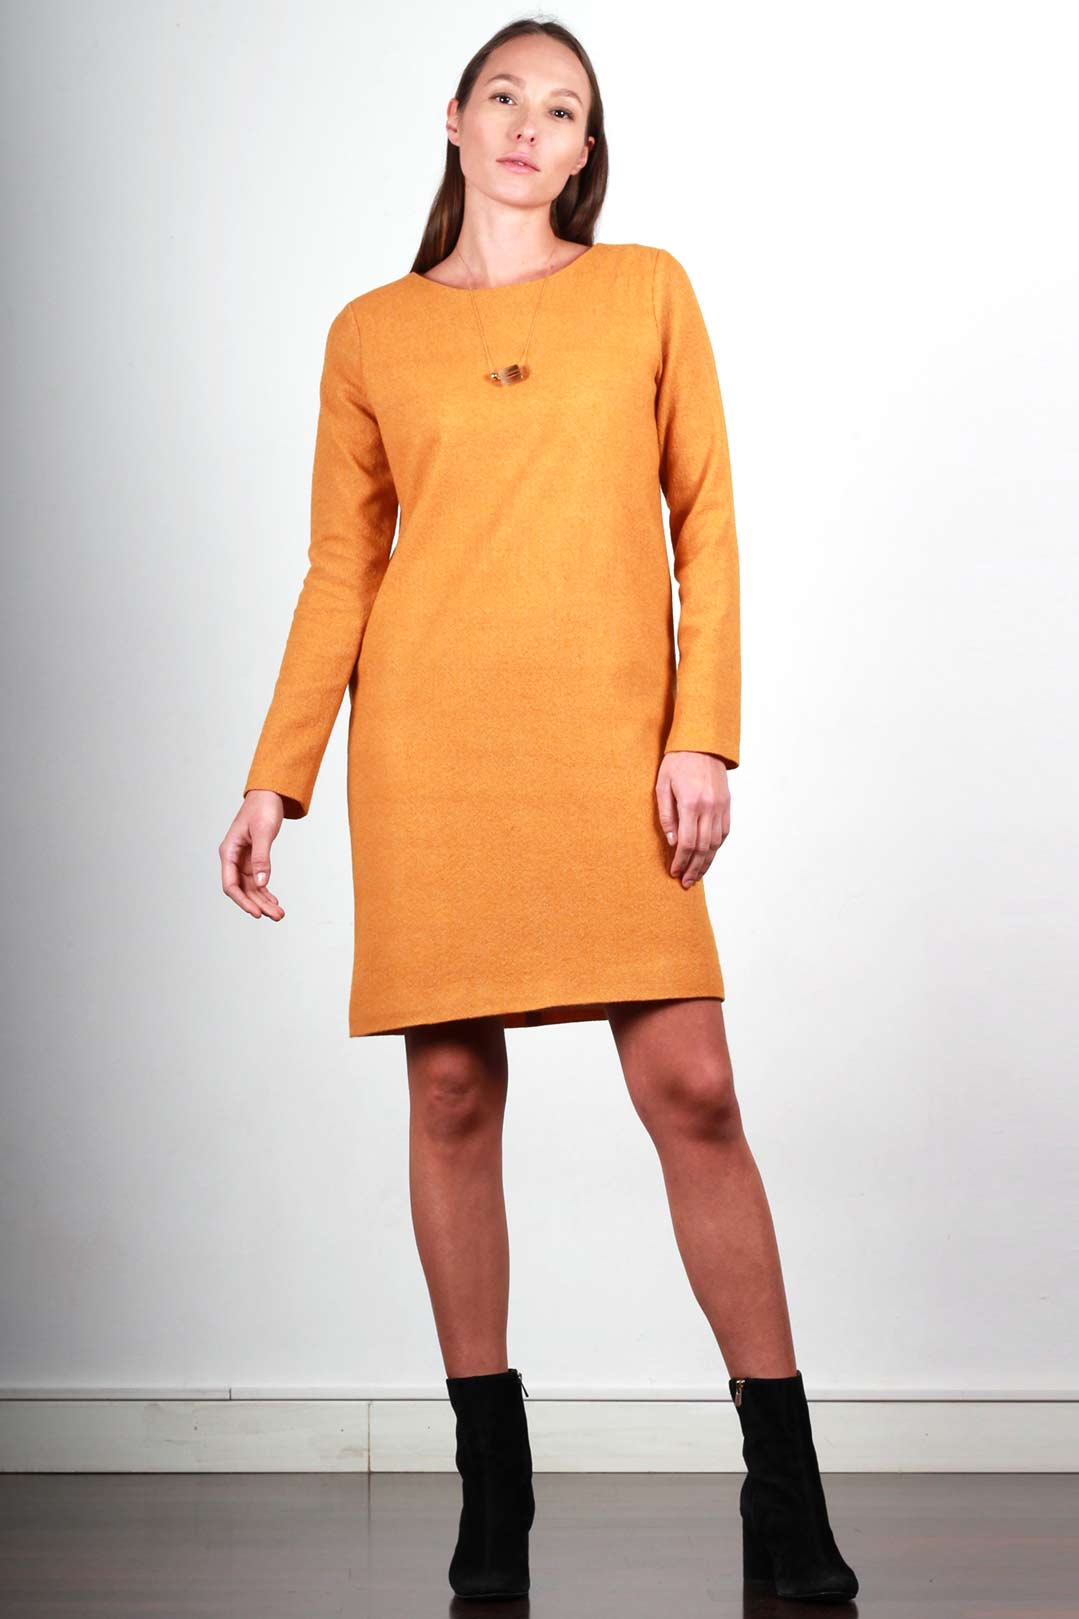 Archives Des Robes Atode Vetement Femme Chic Classe Et Eco Responsable Made In France